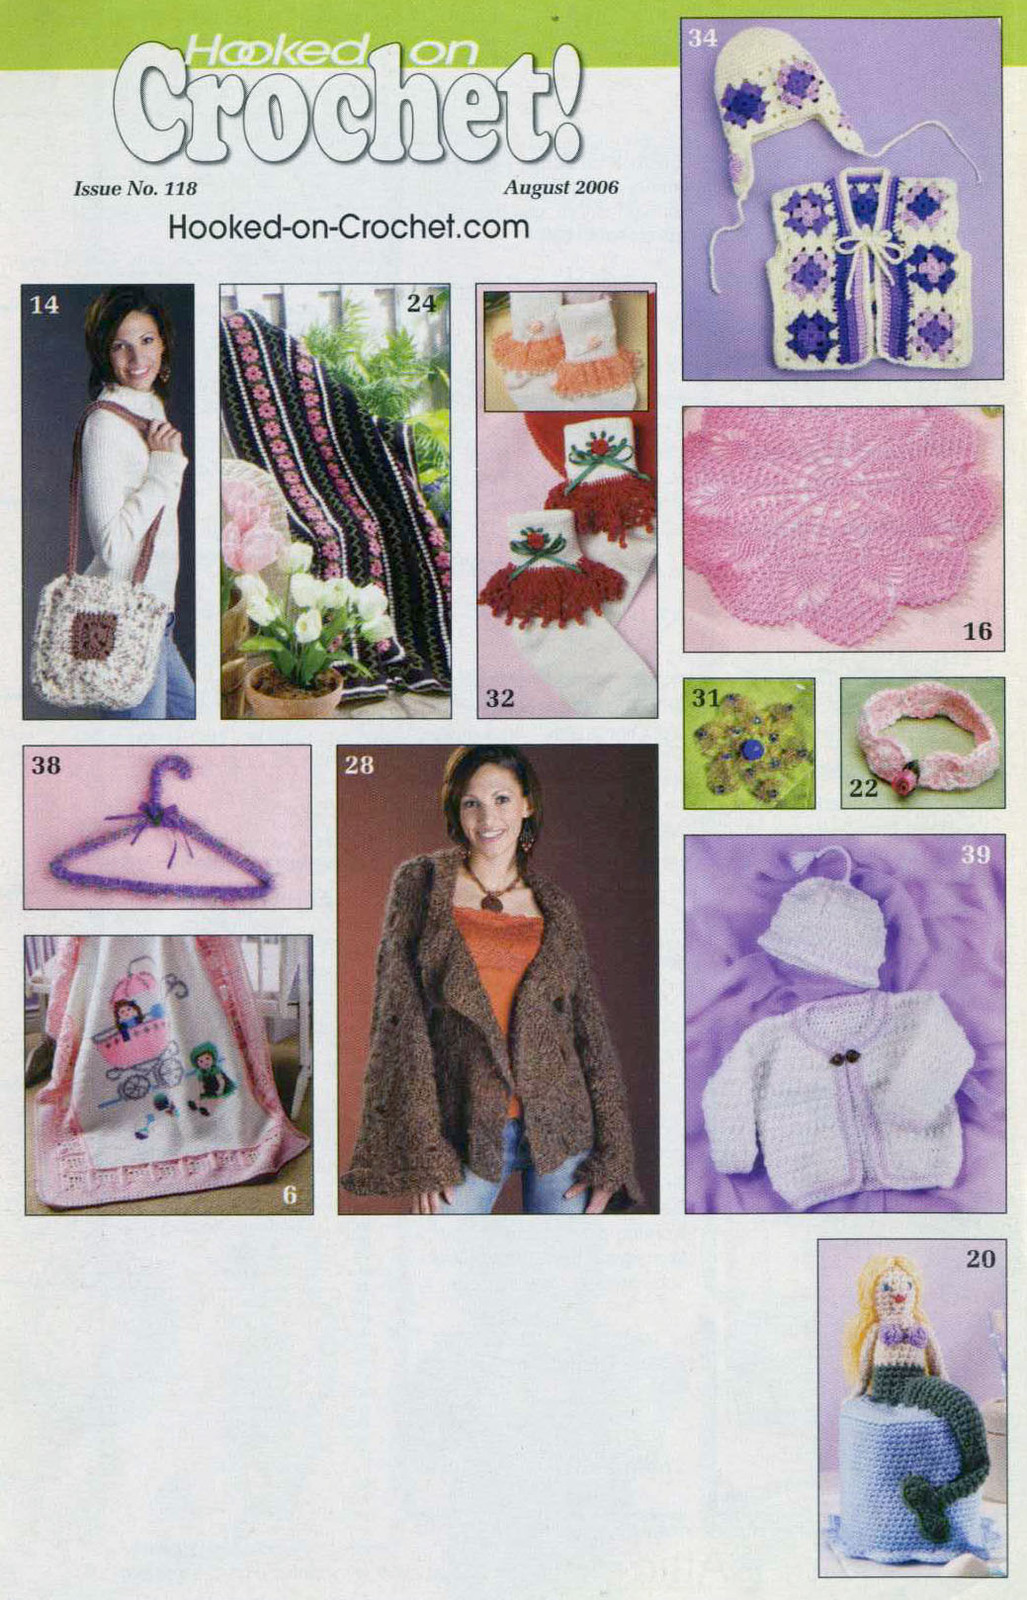 Hooked on Crochet! patterns #118; August 2006